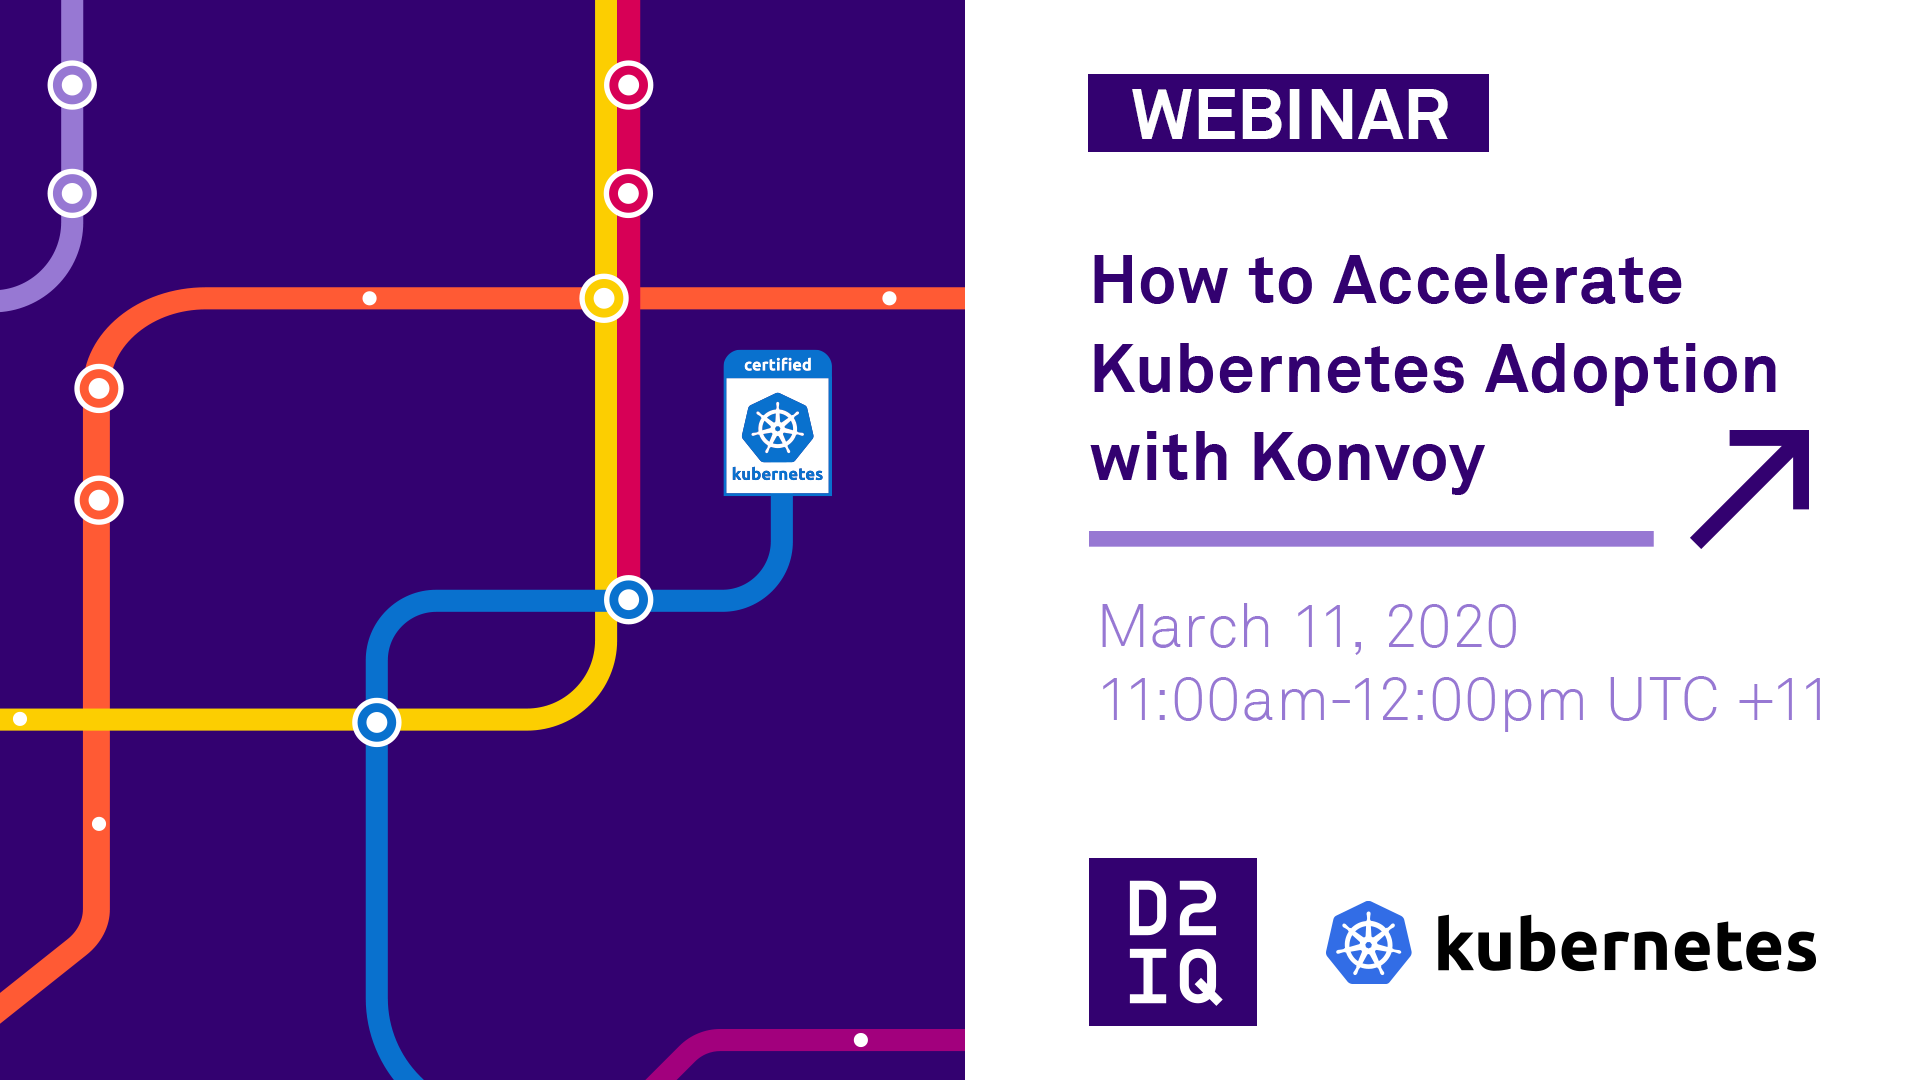 How to Accelerate Kubernetes Adoption with Konvoy